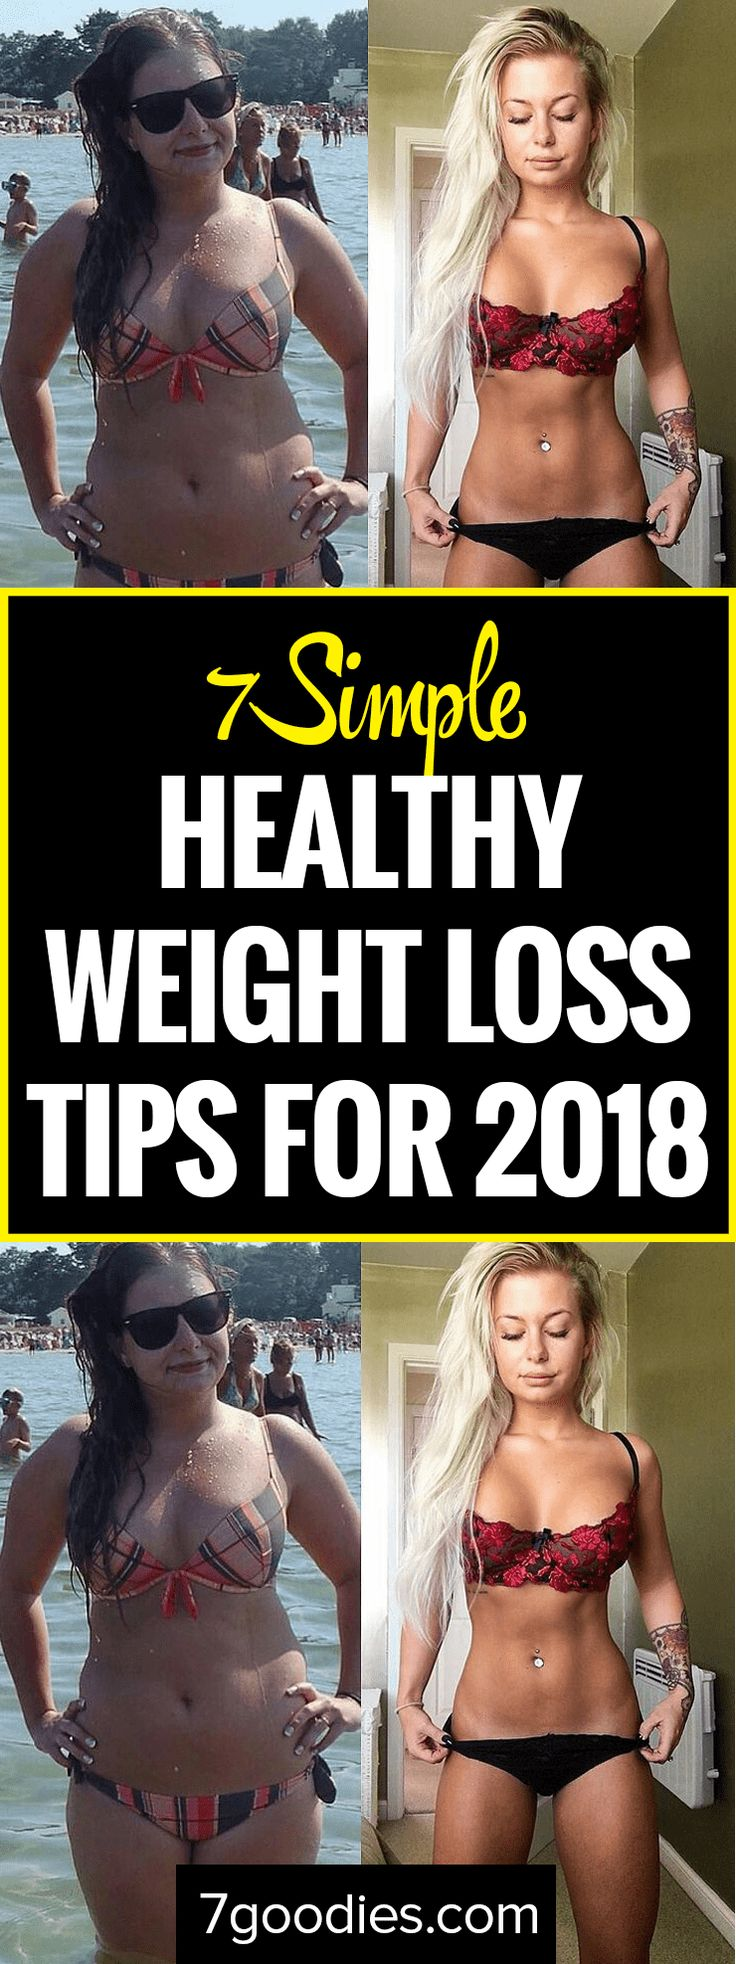 Healthy weight loss made simple with these tips